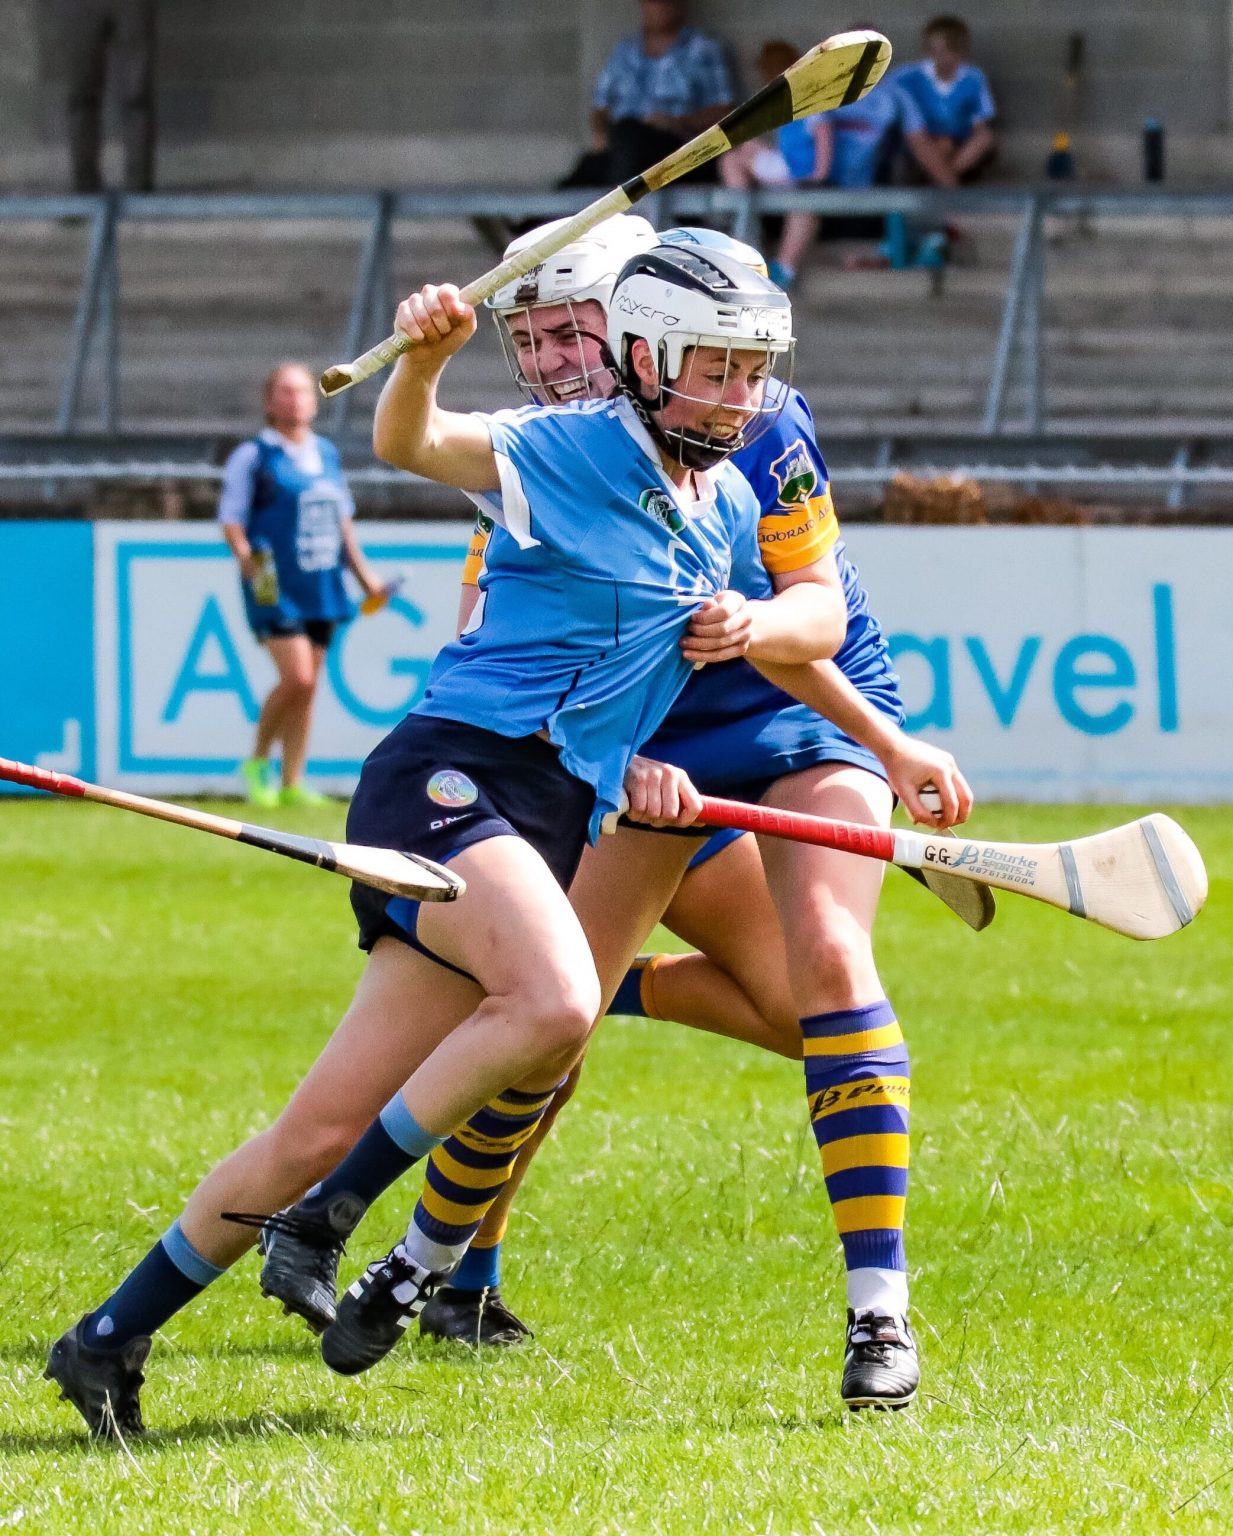 Dublin camogie player in a sky blue jersey, navy skort and black and white helmet has her jersey held by a Tipperary player in a dark blue jersey with yellow trim, dark blue skort and white helmet, players have called for rule changes particularly the physical contact rule